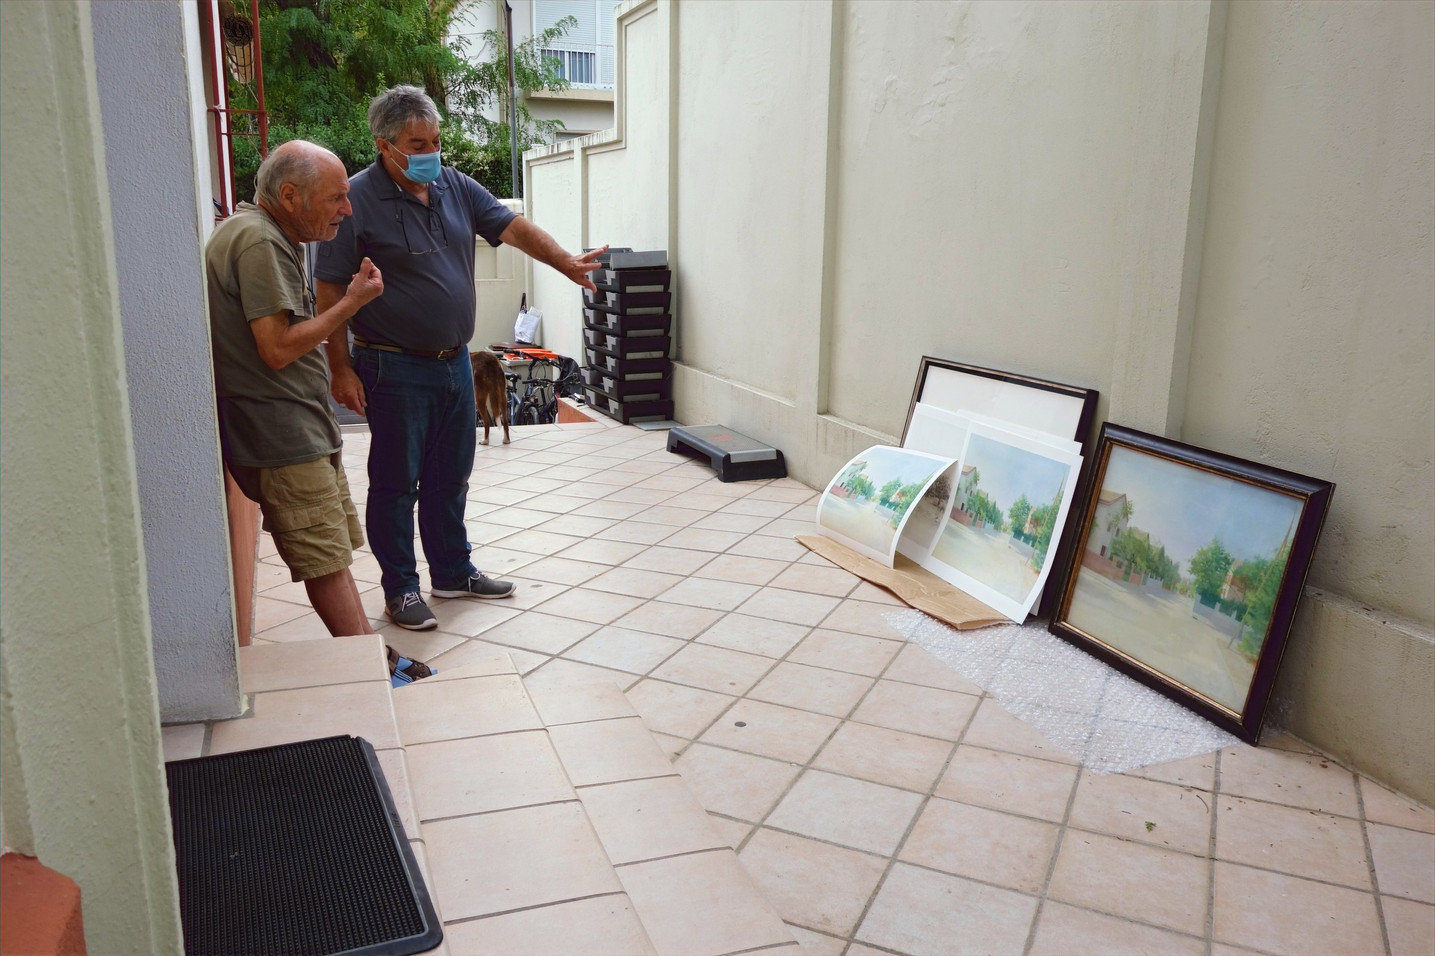 Antonio López and Francisco Fernández from UM Photography watching the proofs of Calle Levante next to the painting by María Moreno